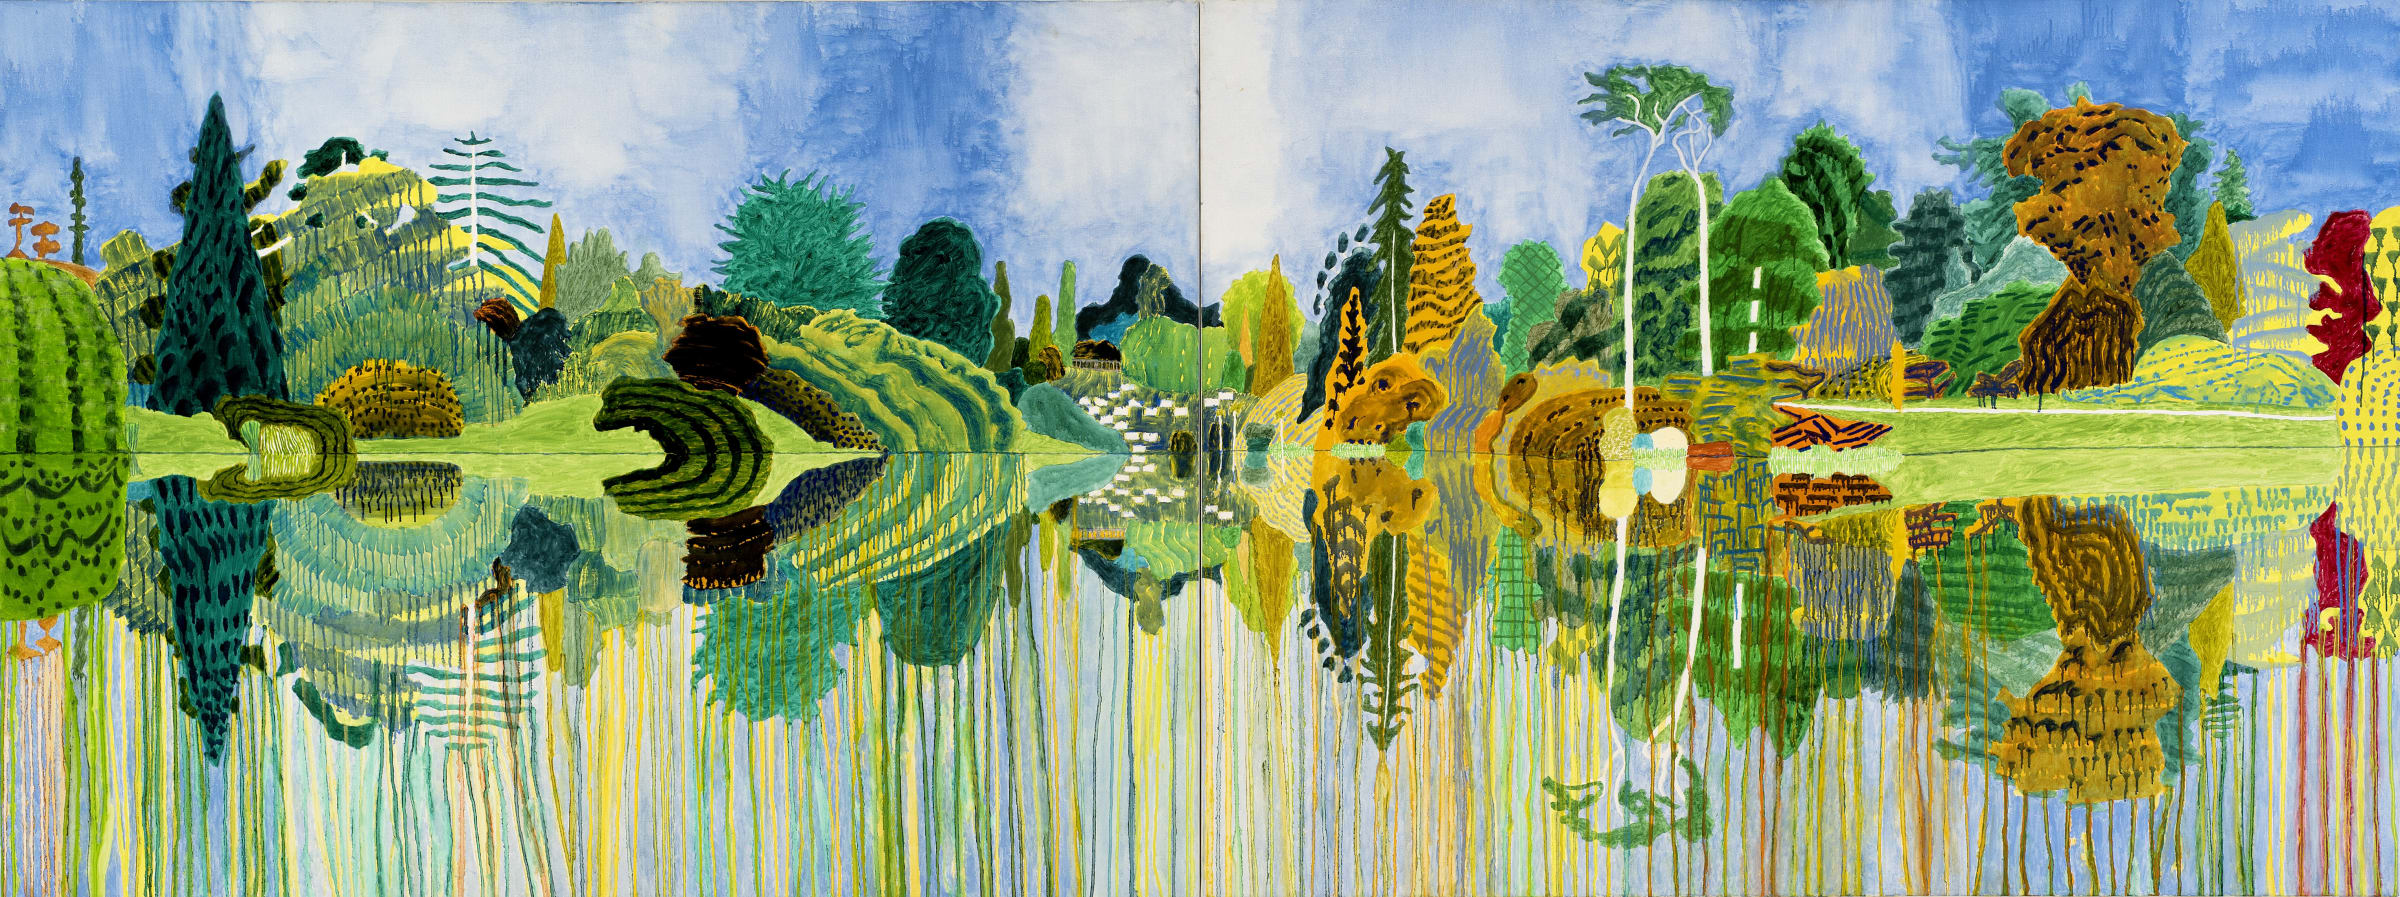 """<span class=""""link fancybox-details-link""""><a href=""""/artists/37-adrian-berg/works/467-adrian-berg-second-lake-sheffield-park-garden-sussex-weald-late-2002/"""">View Detail Page</a></span><div class=""""artist""""><strong>Adrian Berg</strong></div> 1929-2011 <div class=""""title""""><em>Second Lake, Sheffield Park Garden, Sussex Weald, Late Summer</em>, 2002</div> <div class=""""medium"""">oil on canvas</div> <div class=""""dimensions"""">52 x 144 1/8 in<br /> 132 x 366 cm</div>"""